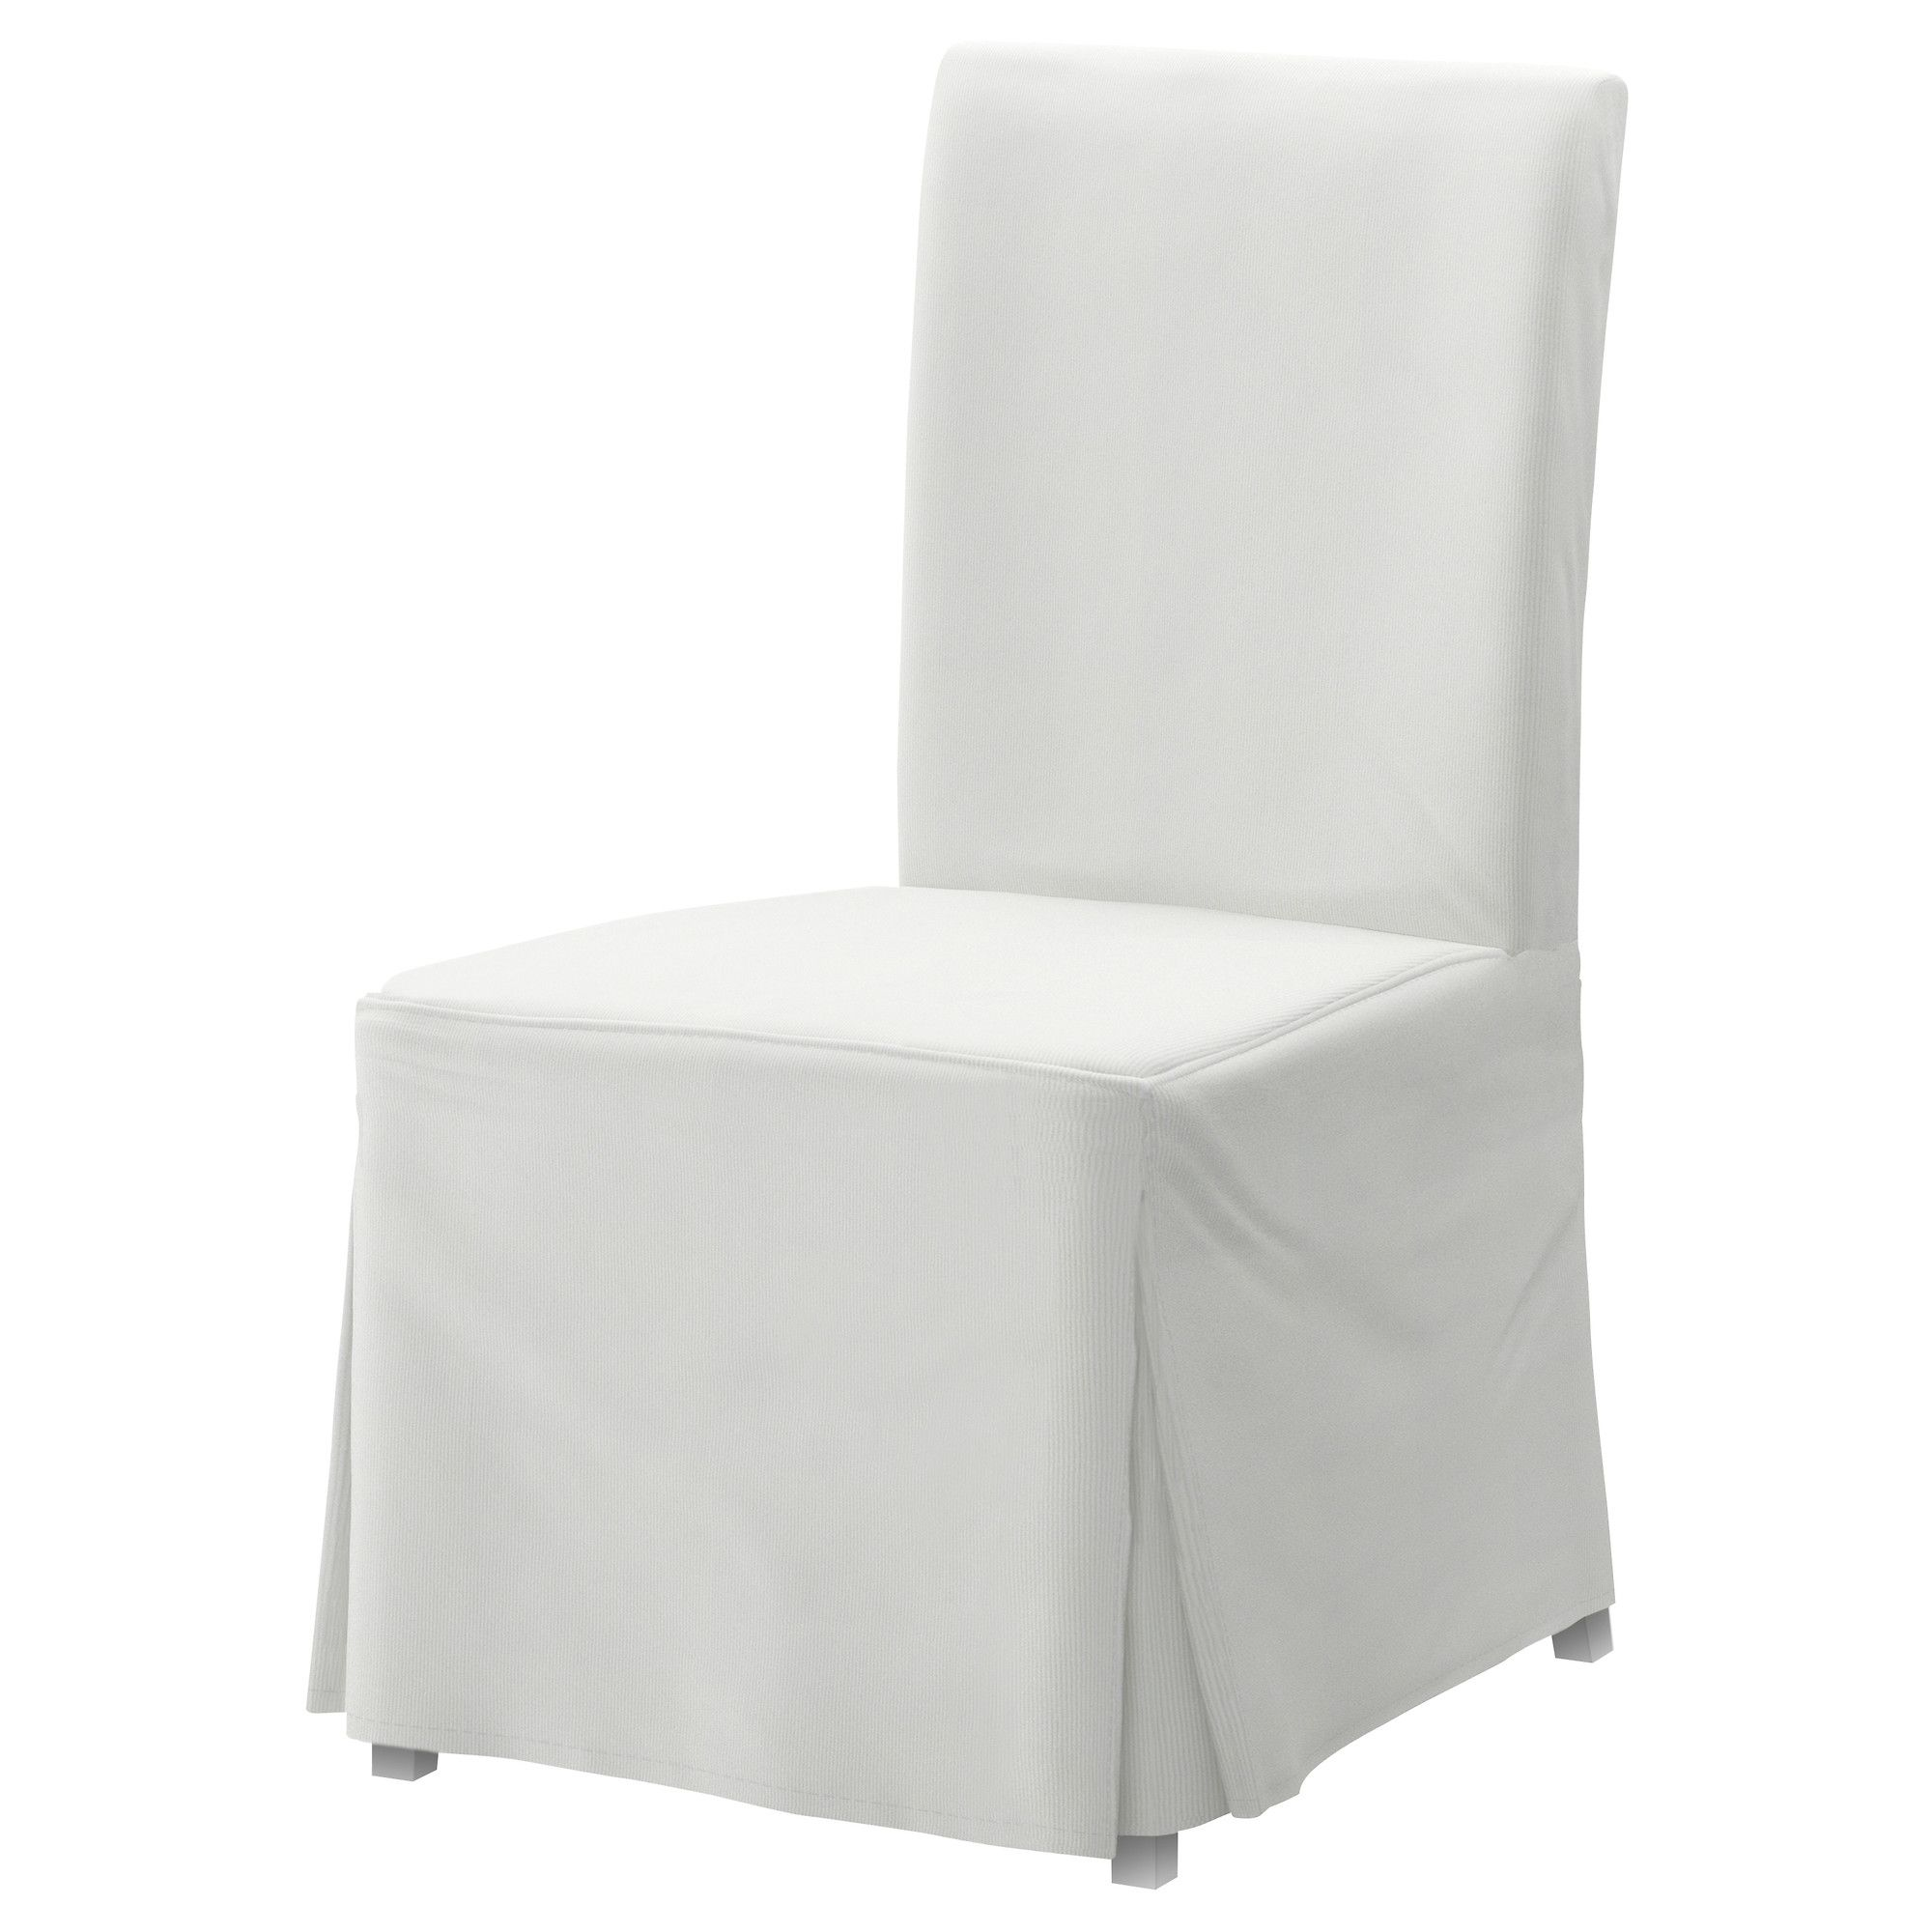 HENRIKSDAL Chair with long cover white, Blekinge white